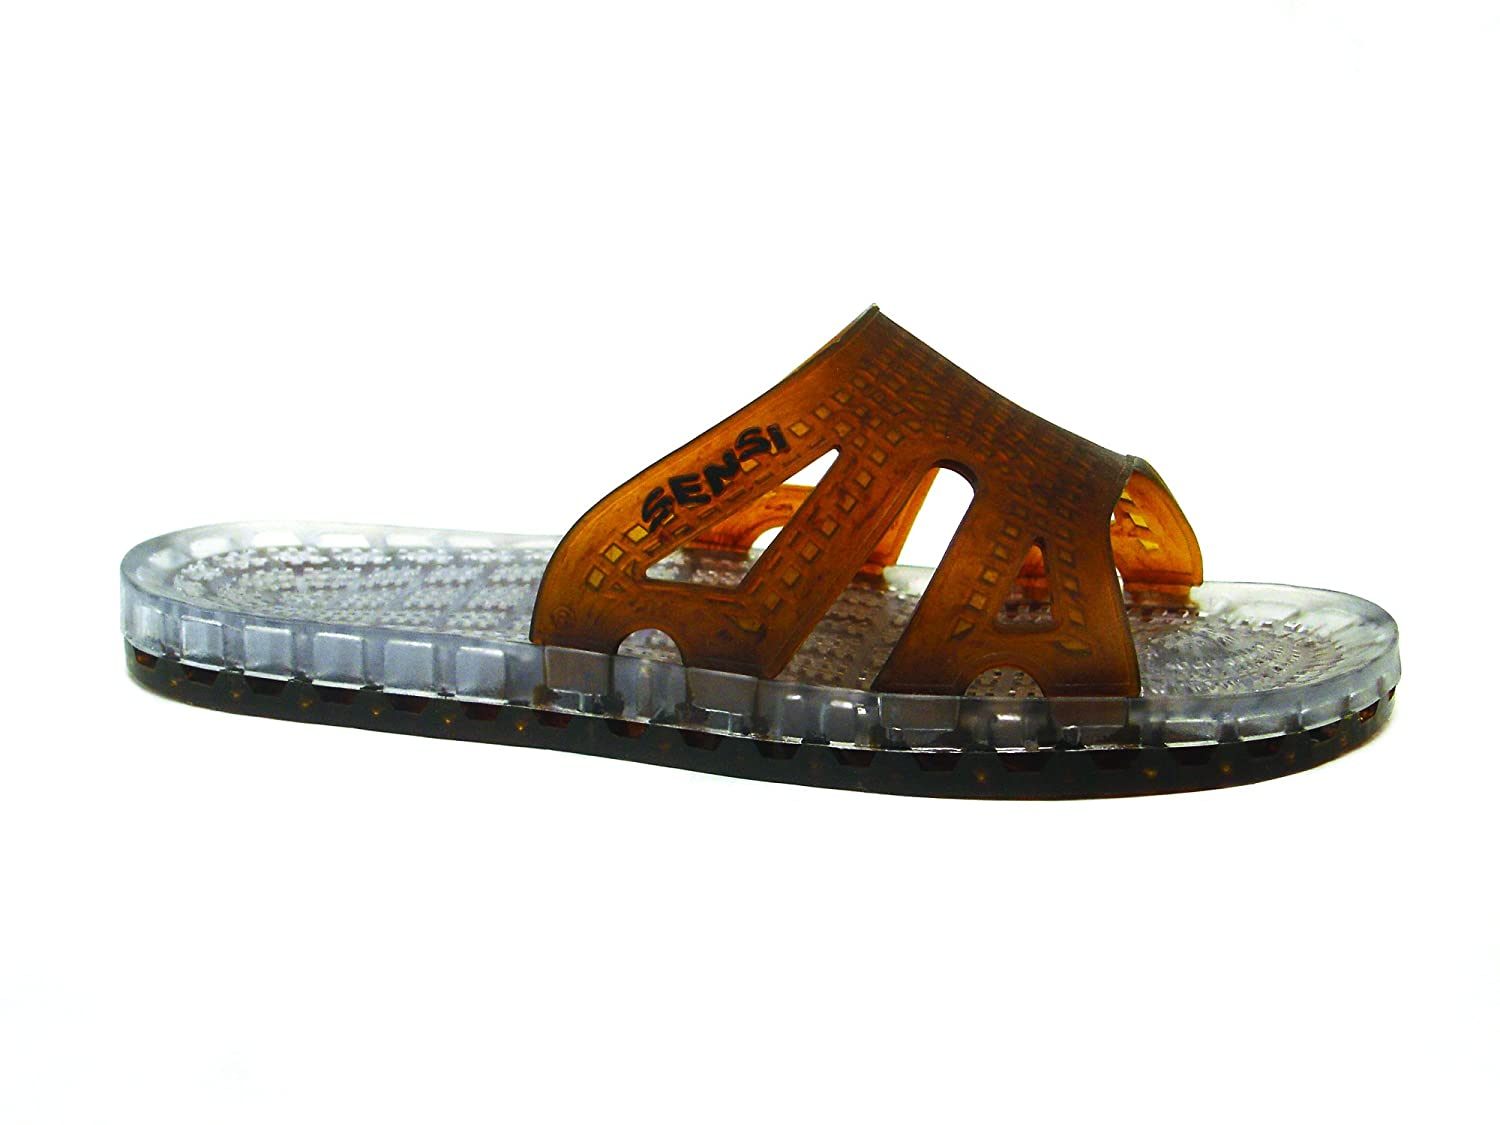 17180b4ba7c6 Amazon.com  Sensi Shower Spa Pool Beach Sandal Waterproof Regatta Basic Spa  Sandals - Tortoise (12)  Beauty